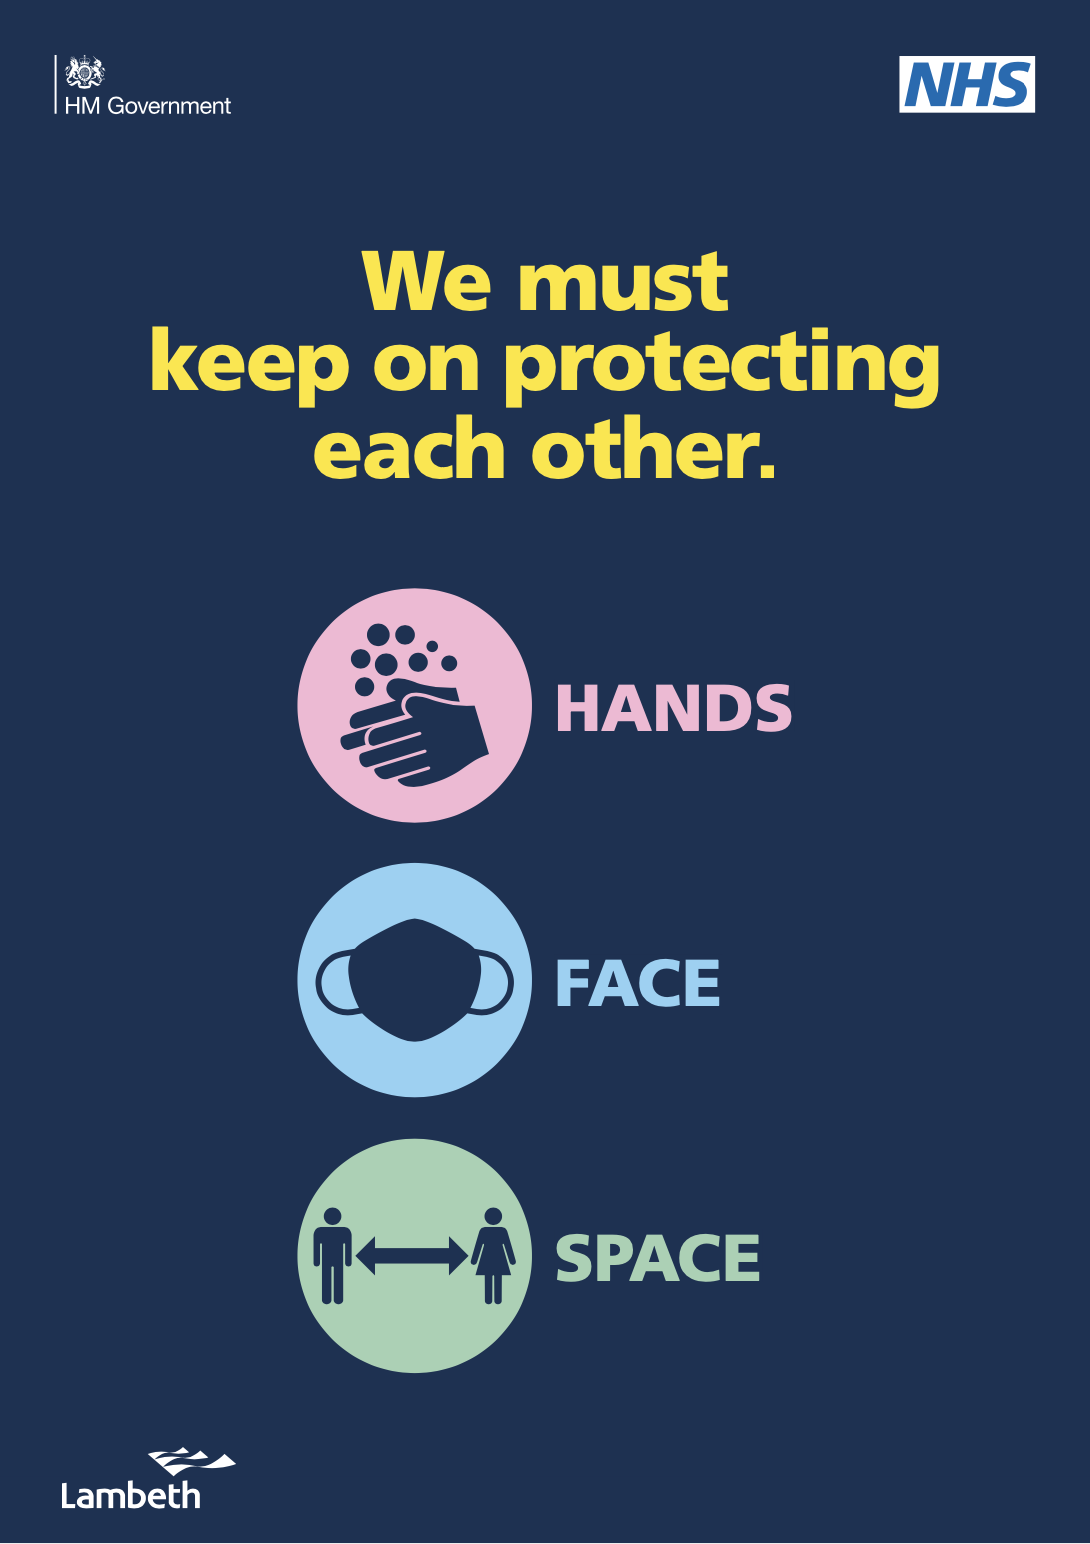 Hands, face, space NHS logo